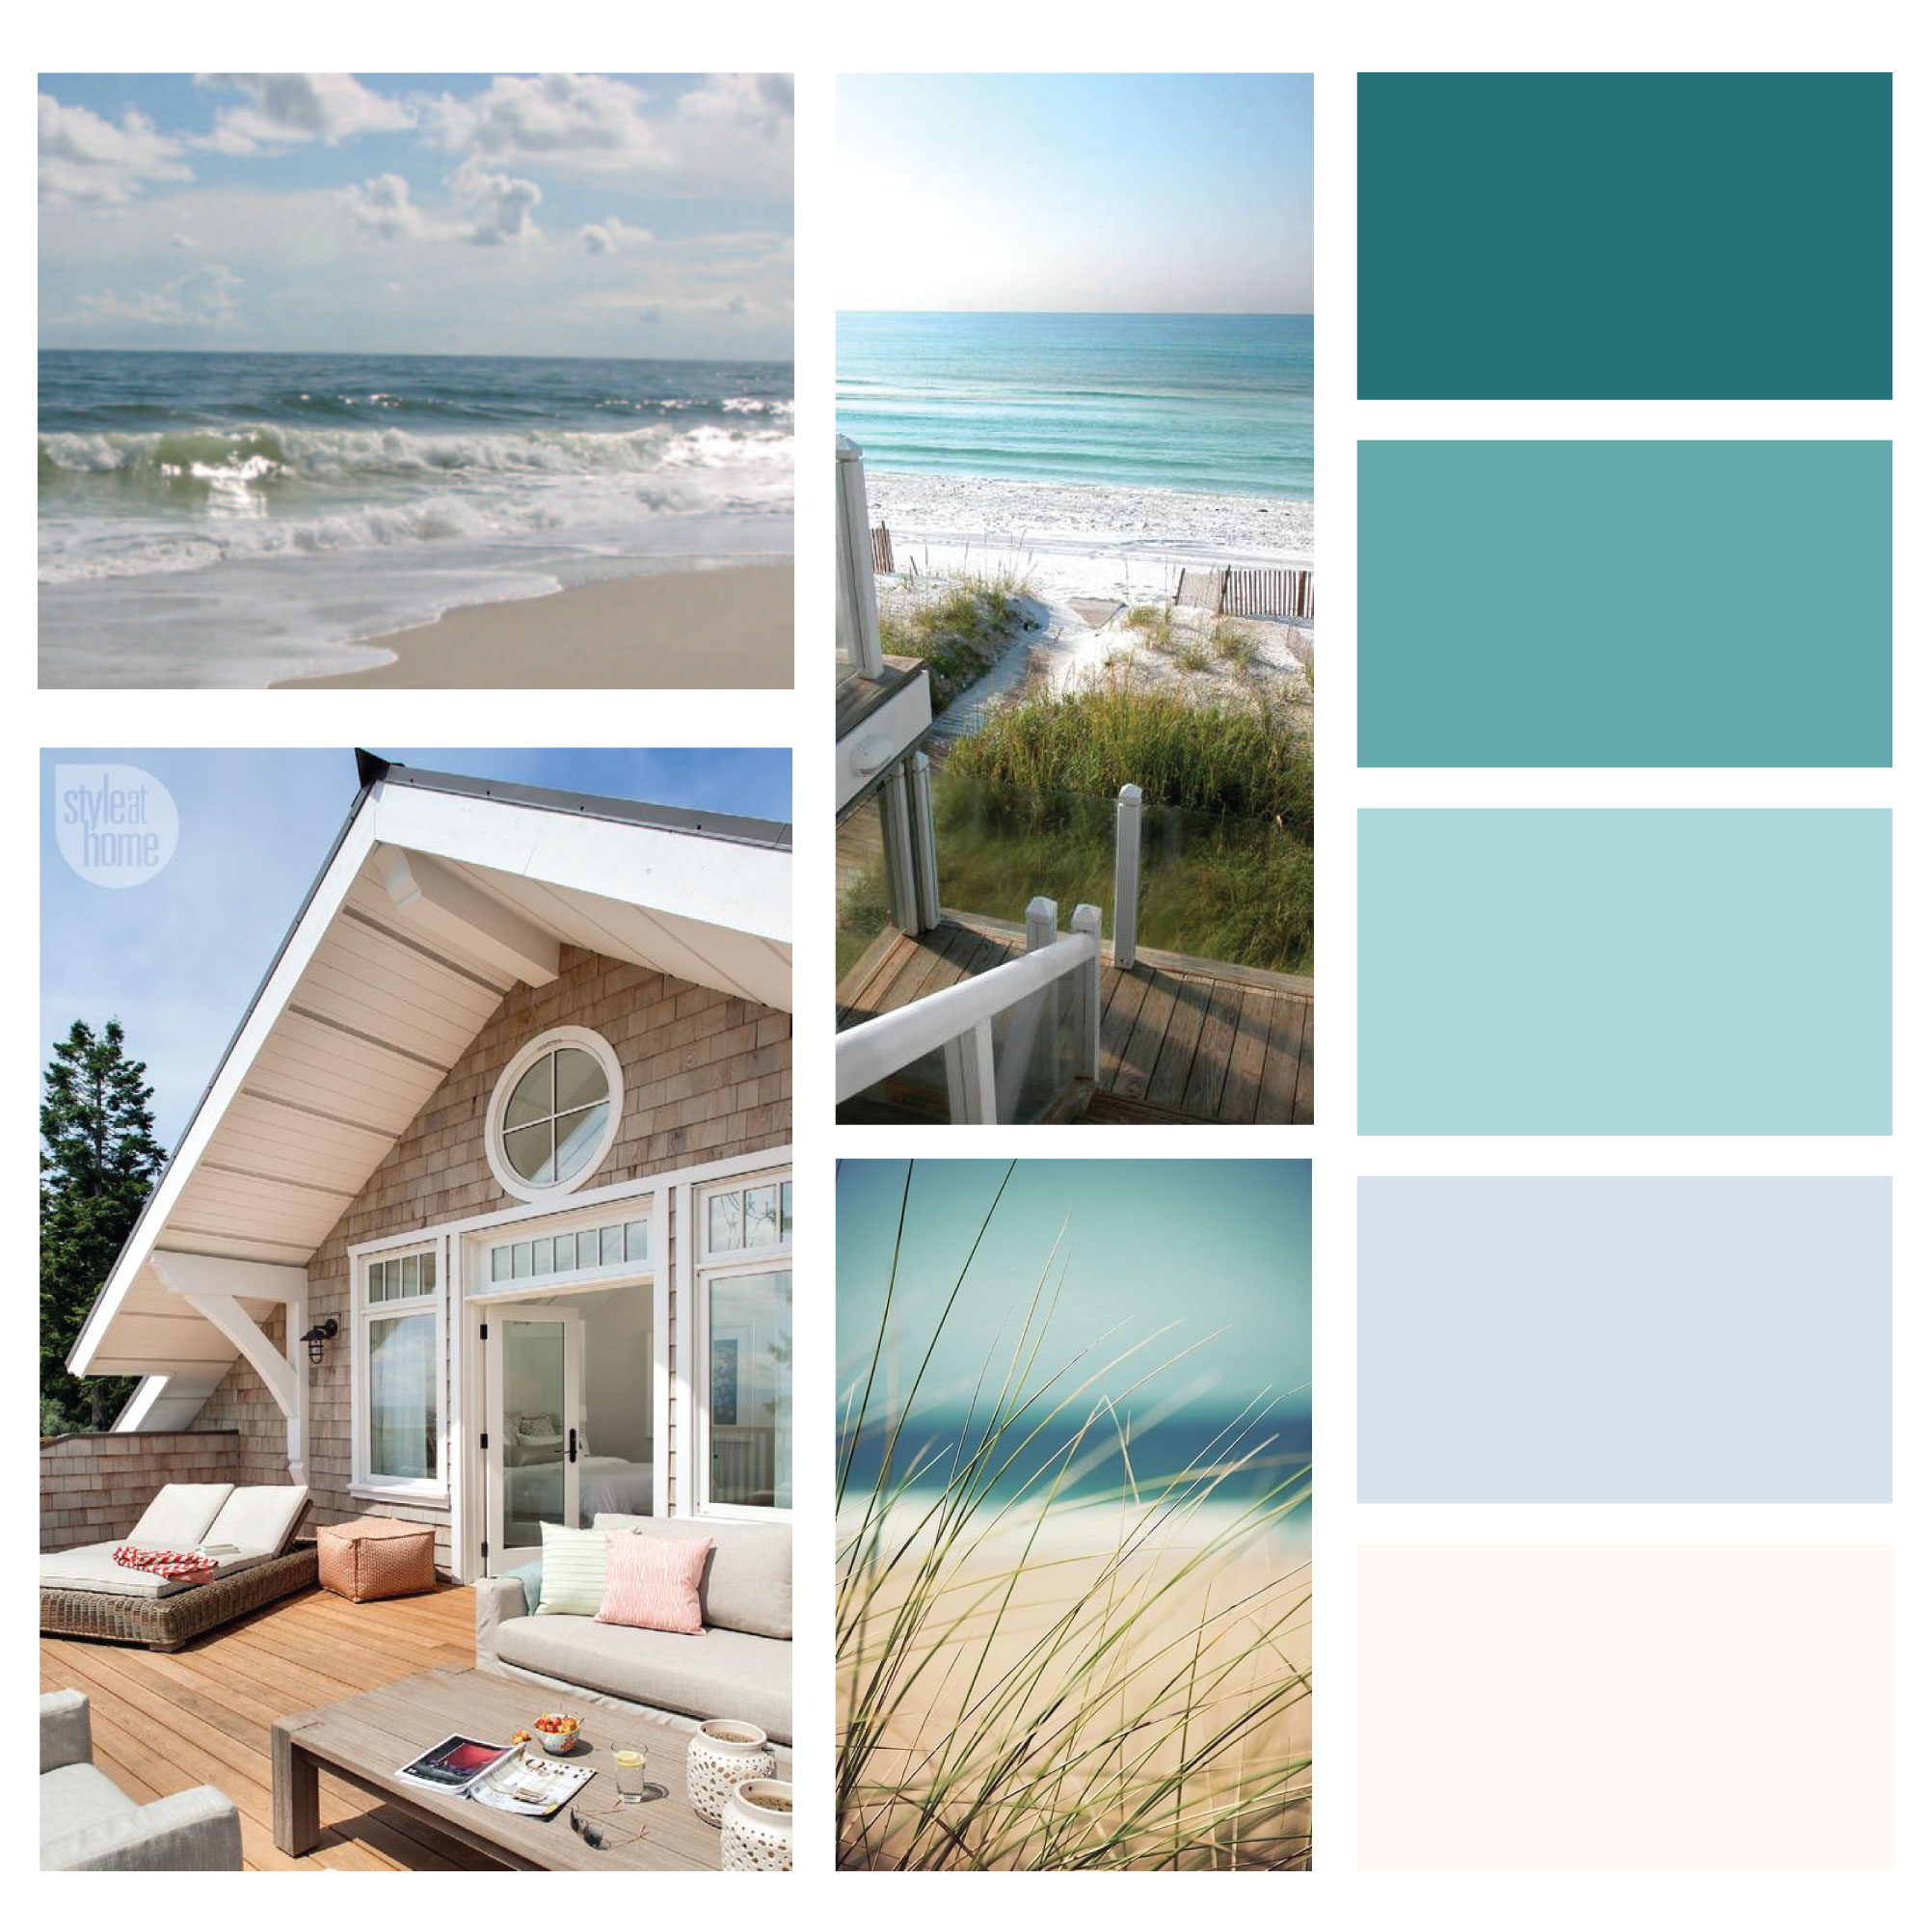 The simple and soulful brand palette for Diane Schade NP was inspired by the soft whites,pale blues, and shimmering greens of the ocean.